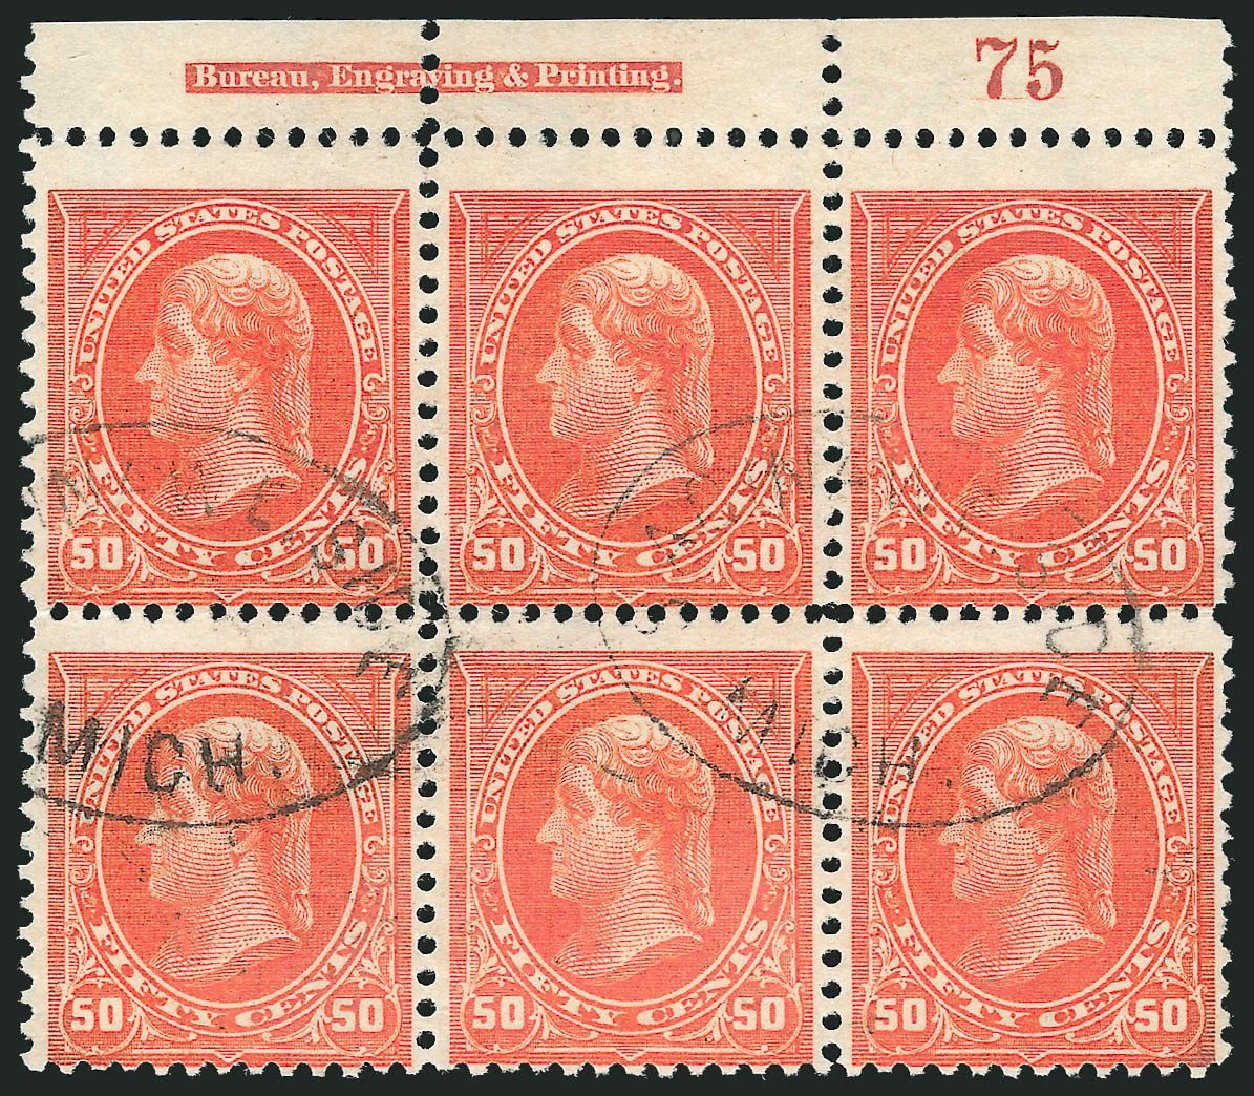 Value of US Stamp Scott Catalog # 275 - 50c 1895 Jefferson. Robert Siegel Auction Galleries, Nov 2014, Sale 1084, Lot 3622